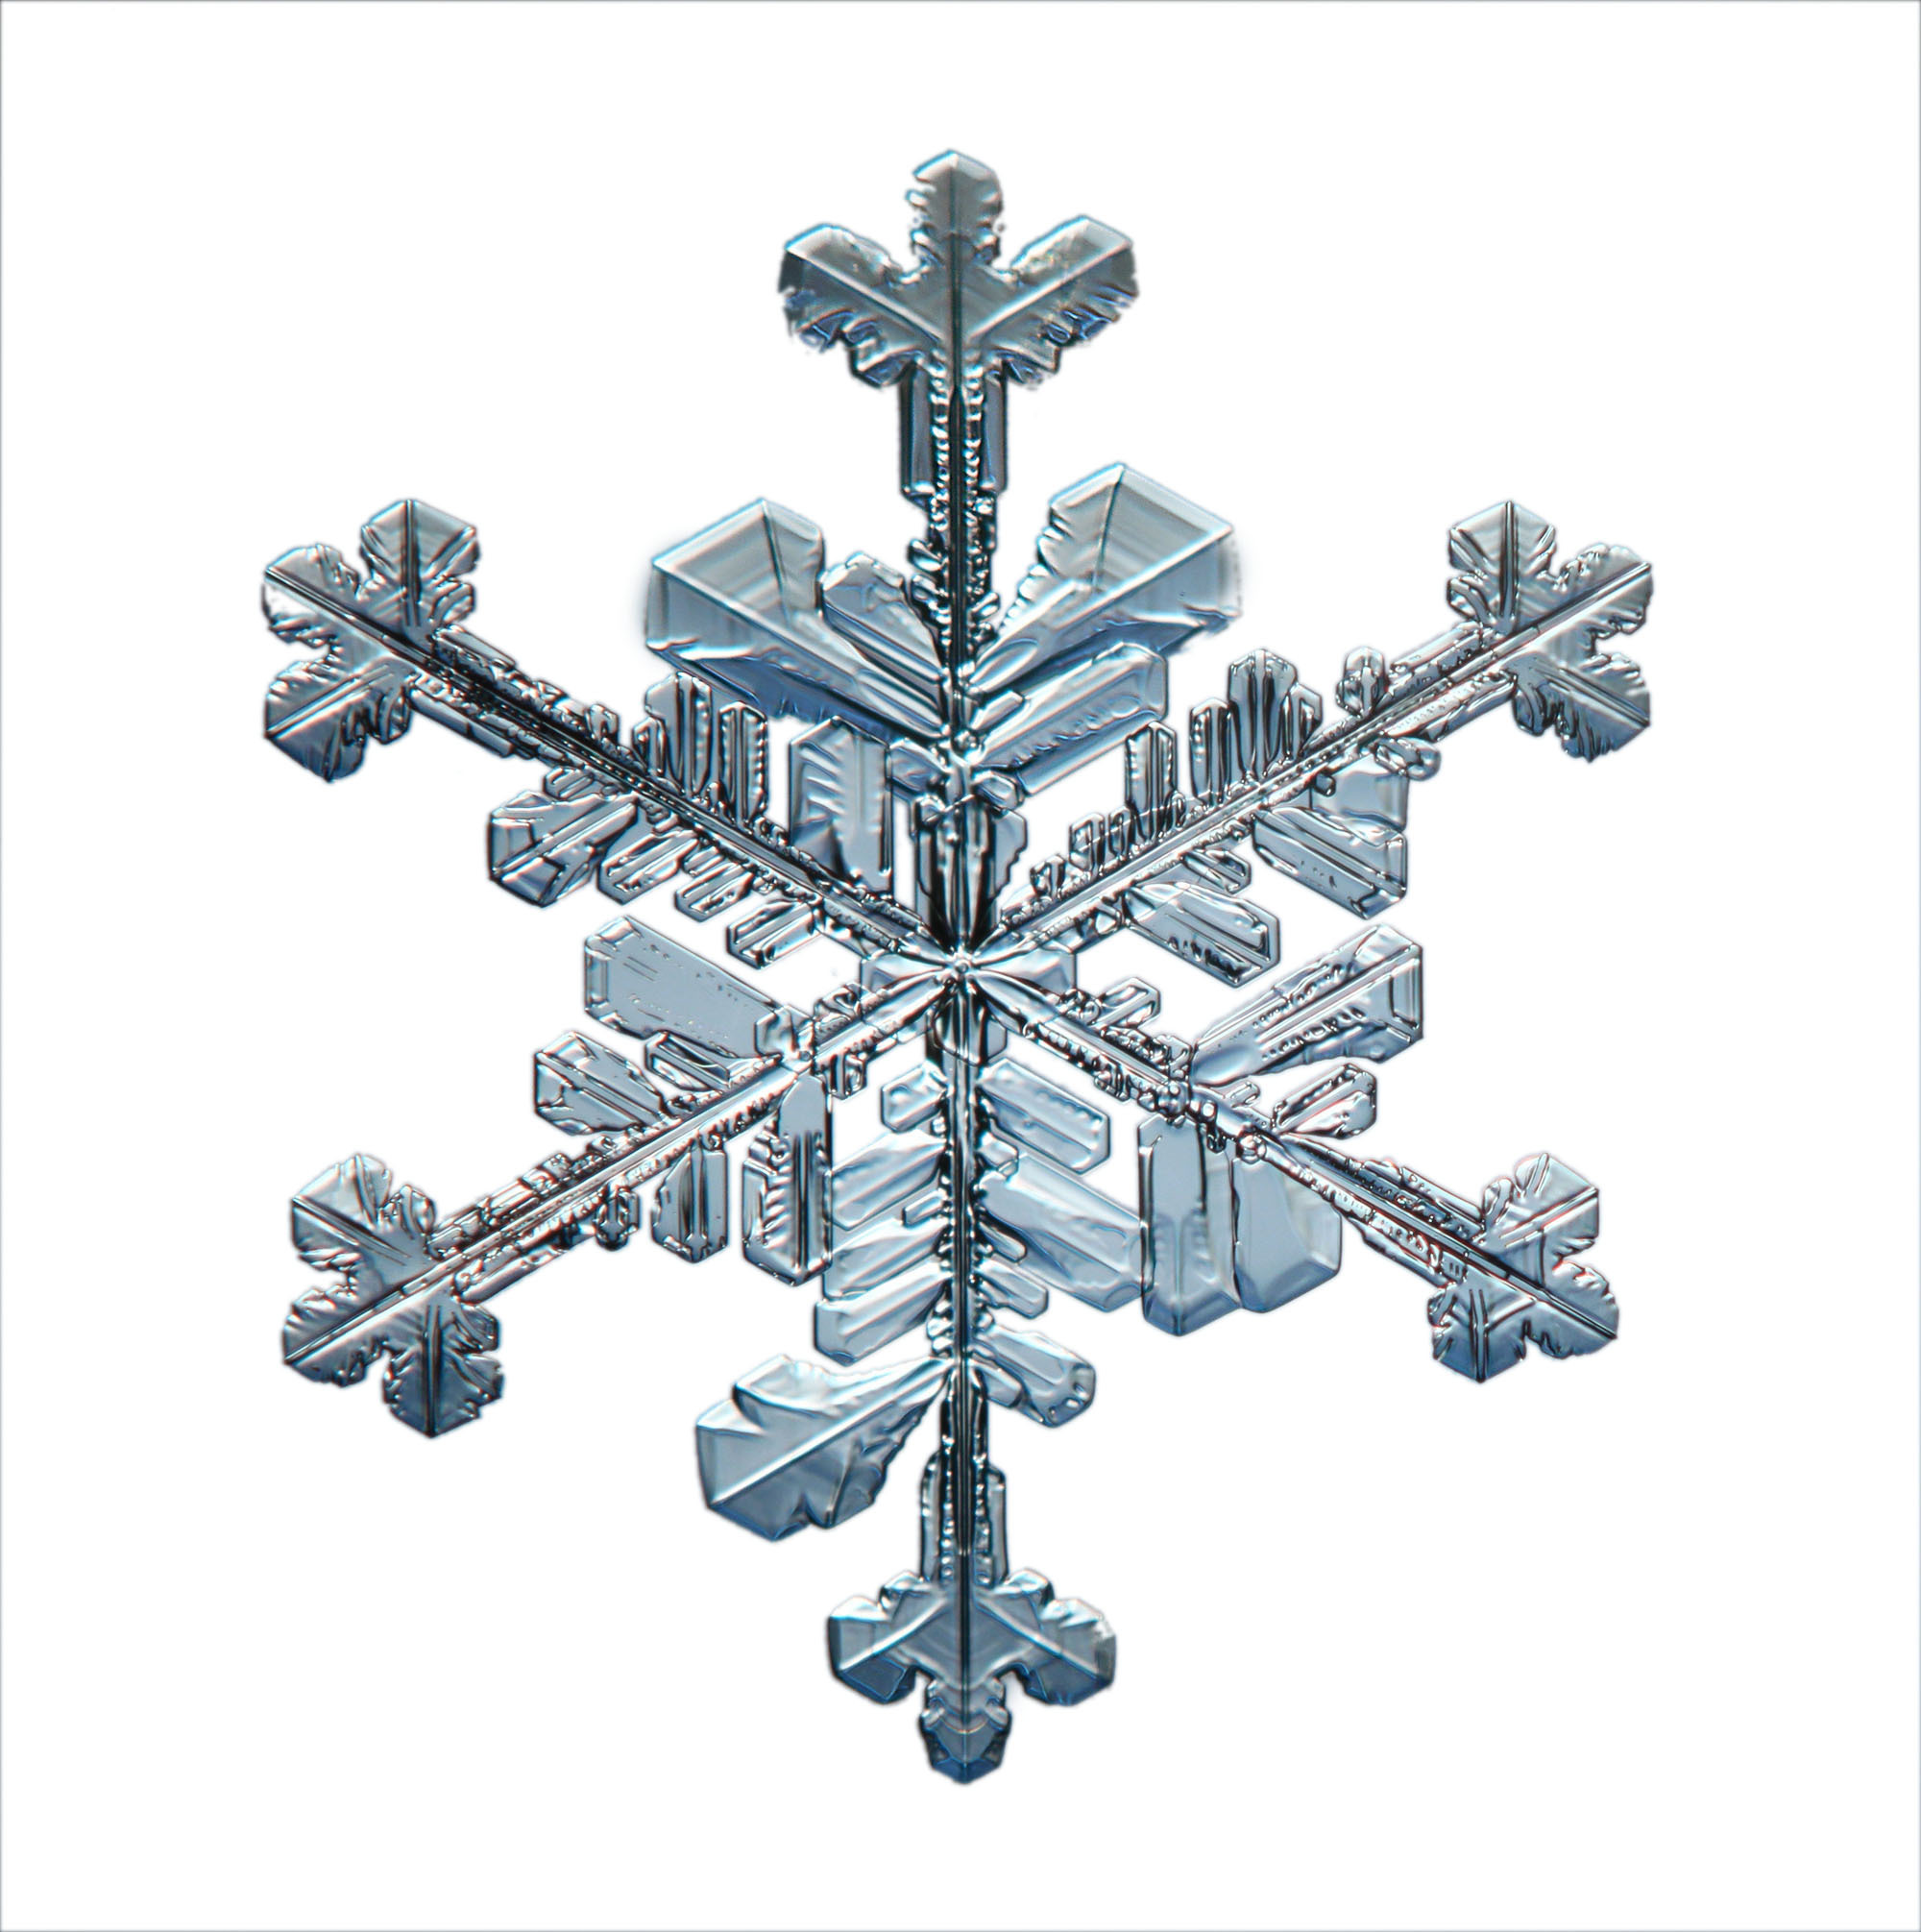 Snowflake-every-flake-is-unique-as-should-be-your-content